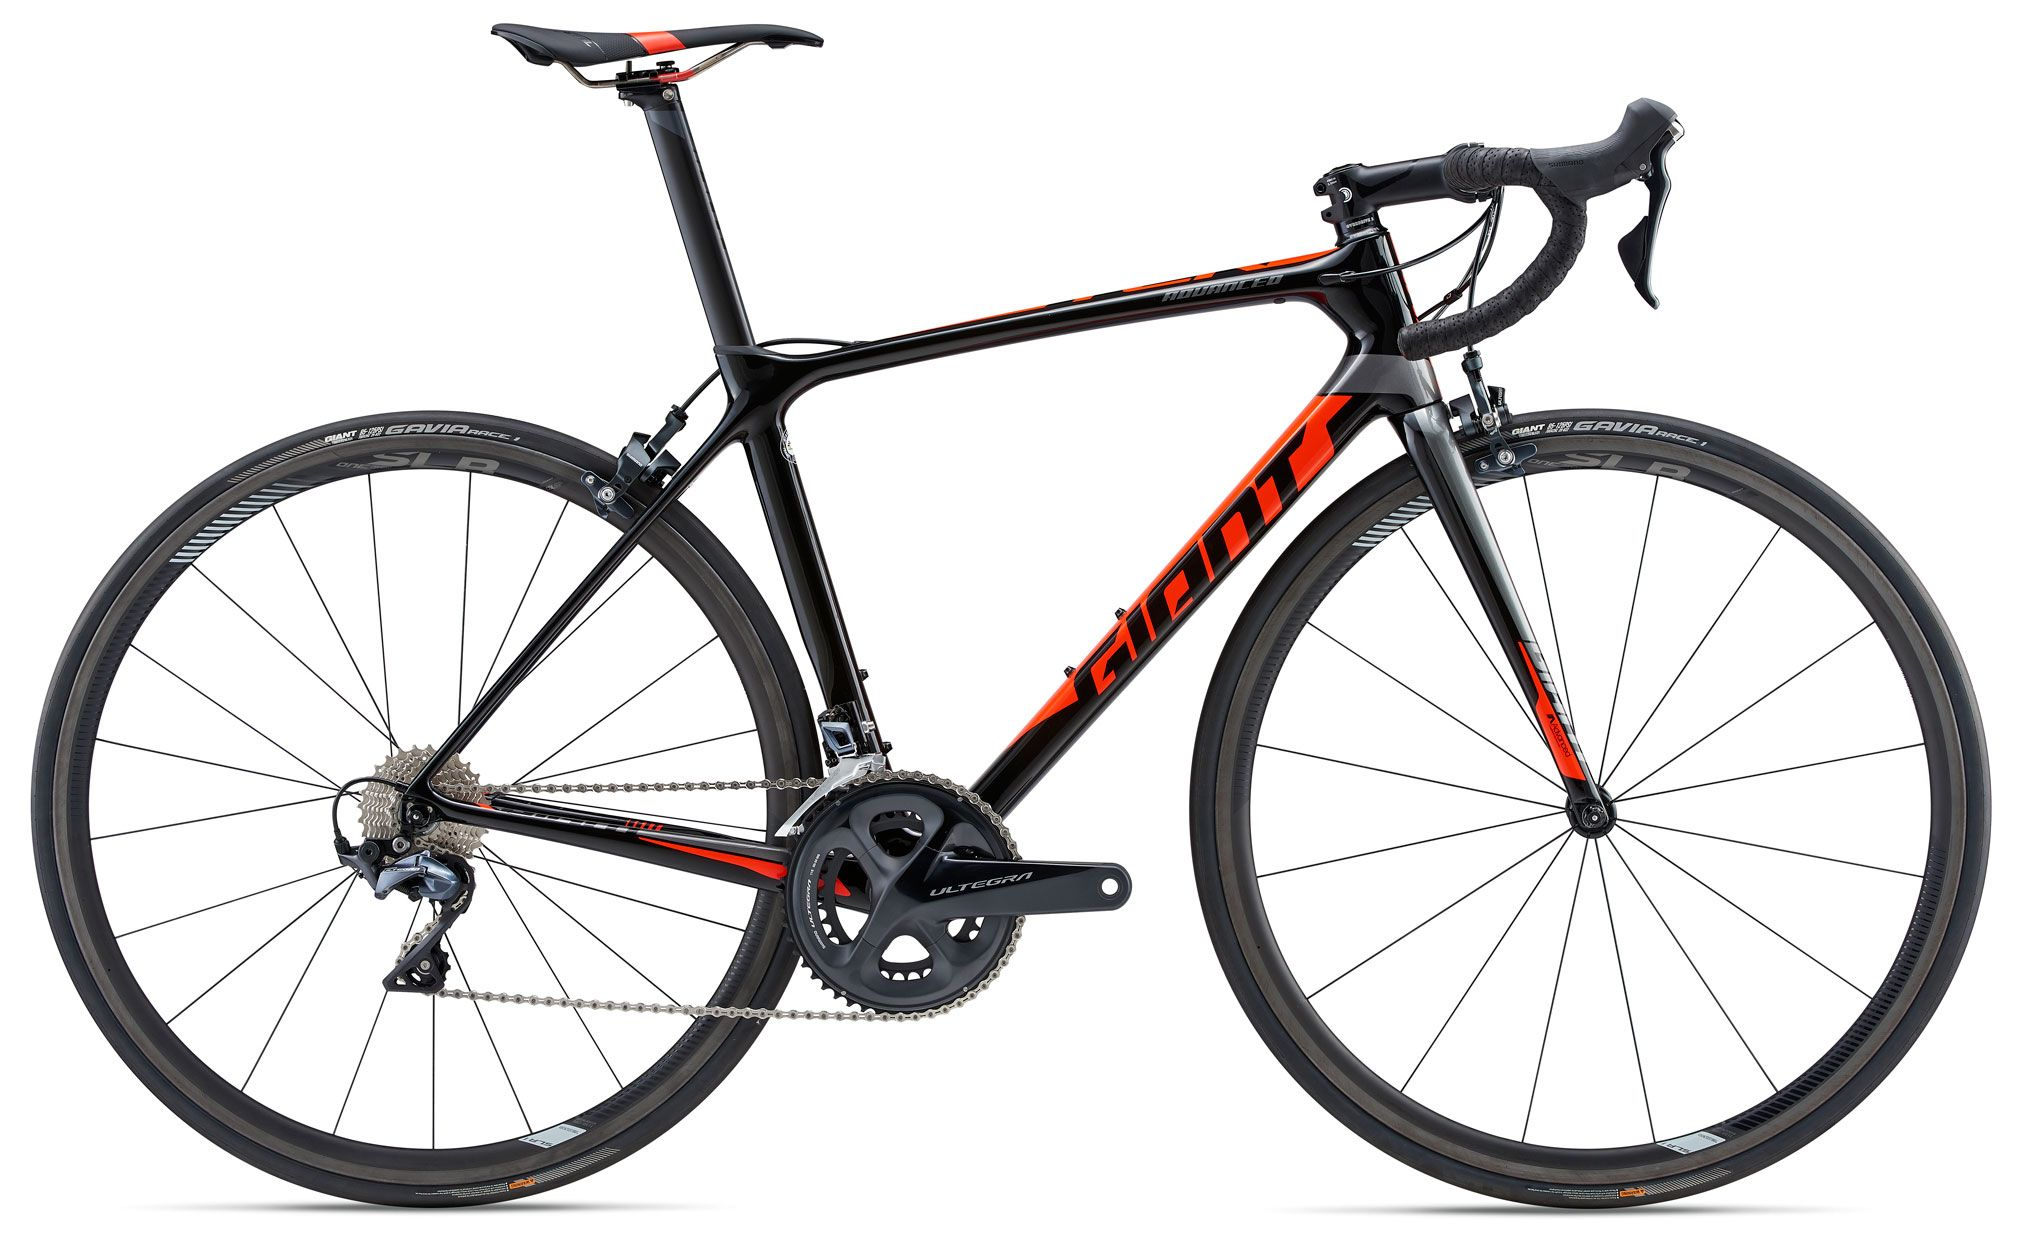 Велосипед Giant TCR Advanced Pro 1 2018 велосипед giant defy advanced pro 0 compact 2015